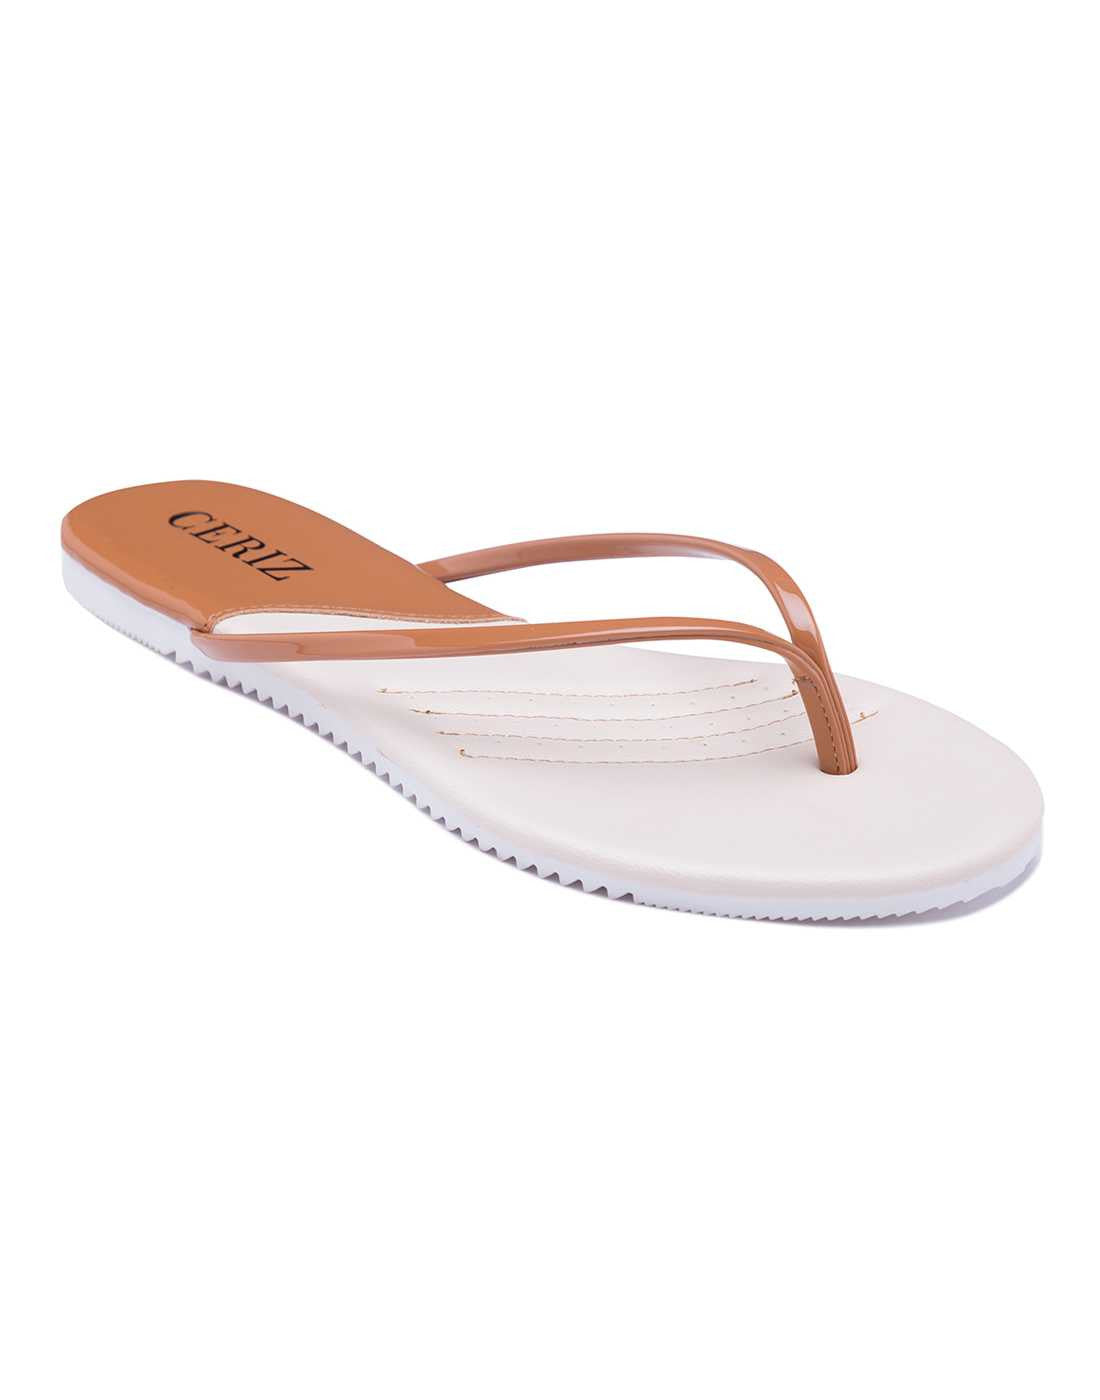 Brown and Beige Flip Flop